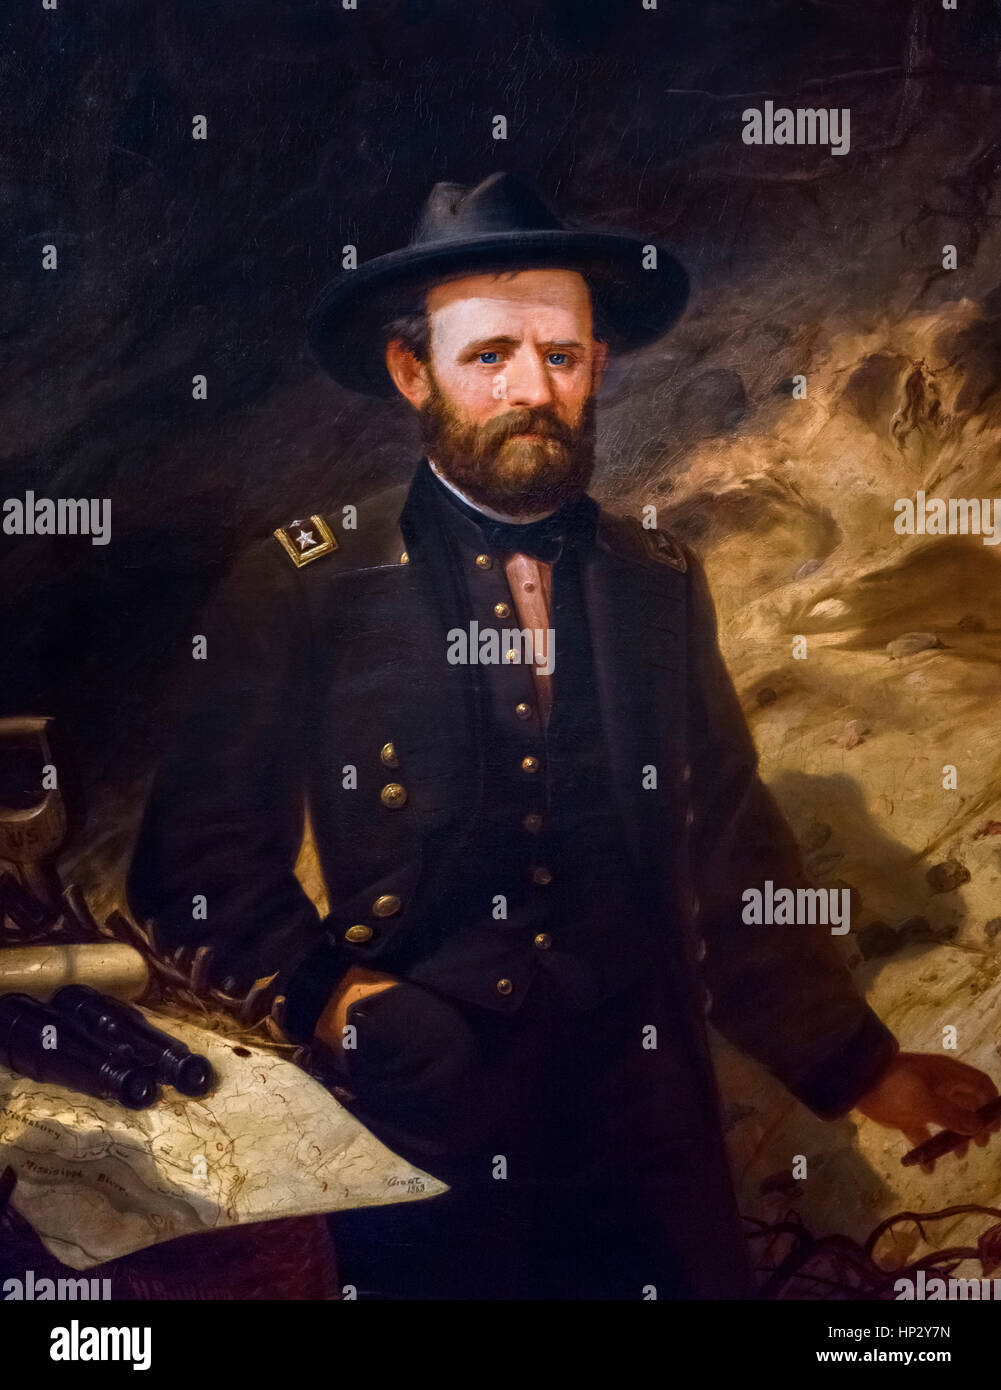 Ulysses S Grant (1822-1885), portrait of the Union Army General and 18th US President by Ole Peter Hansen Balling, - Stock Image